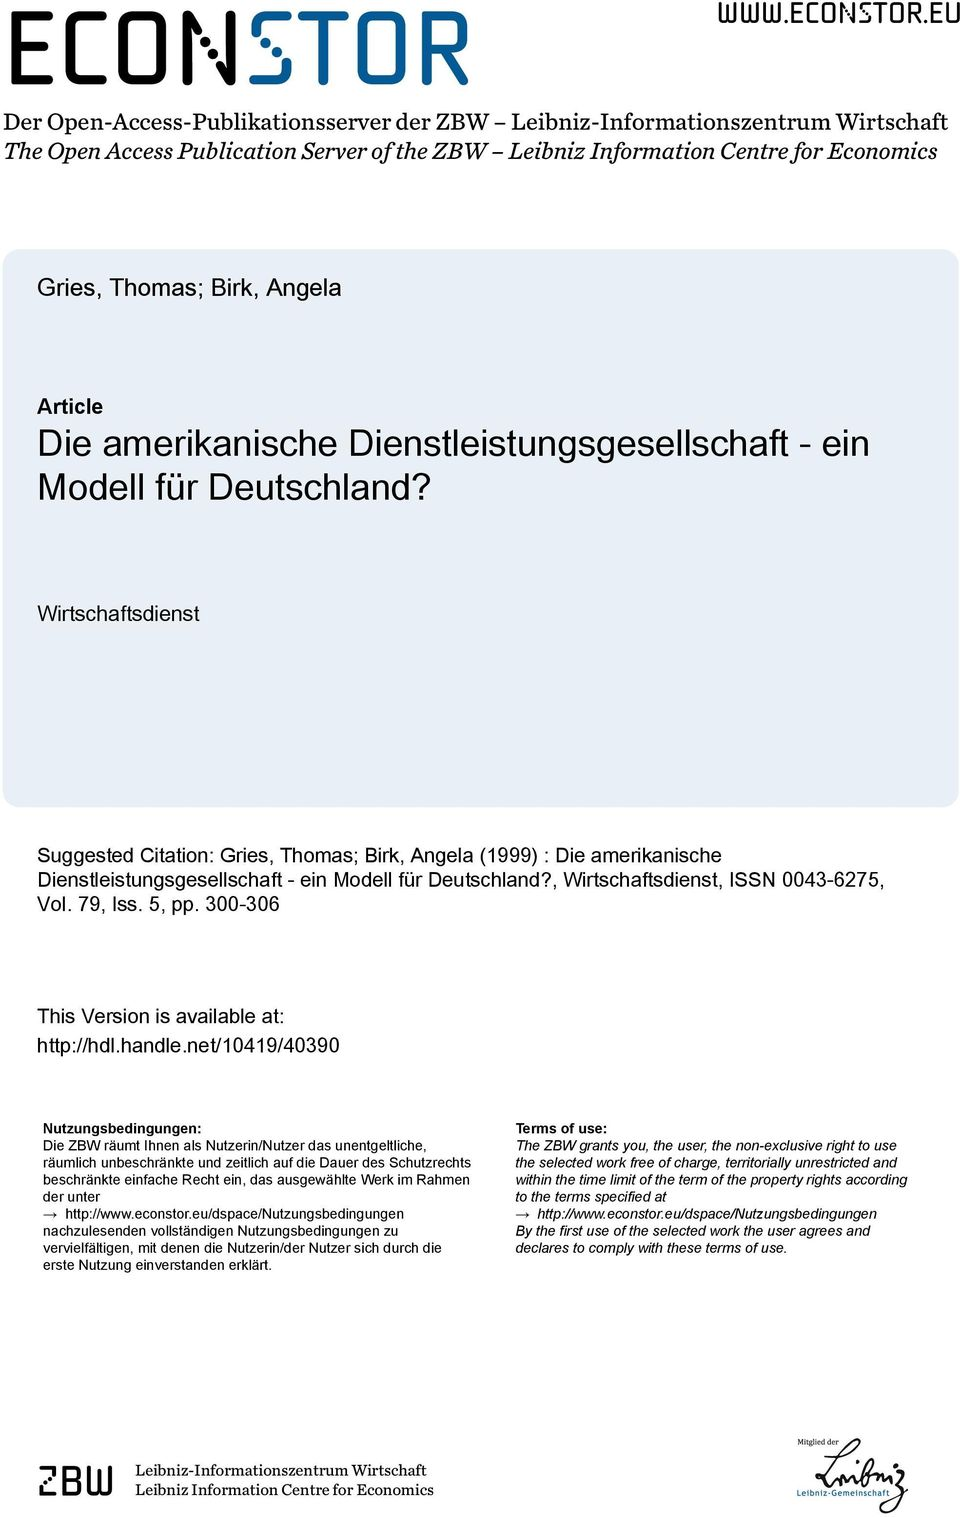 eu Der Open-Access-Publikationsserver der ZBW Leibniz-Informationszentrum Wirtschaft The Open Access Publication Server of the ZBW Leibniz Information Centre for Economics Gries, Thomas; Birk, Angela